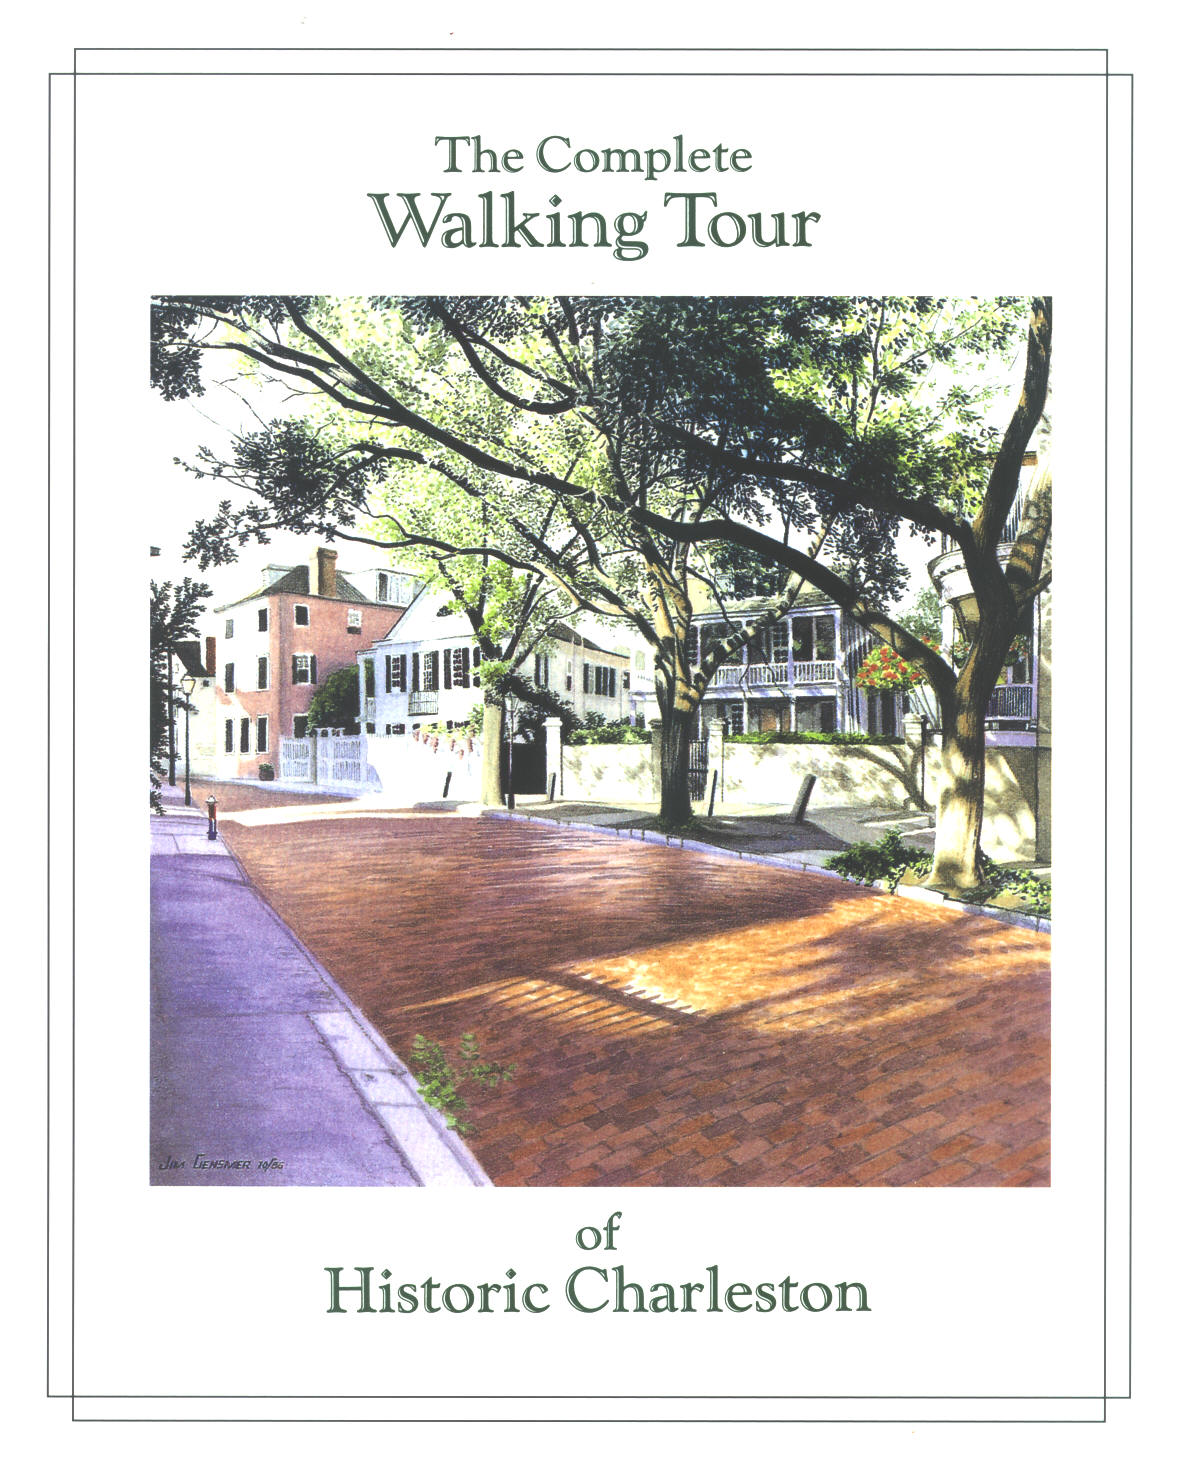 The complete walking tour of historic Charleston Nita Swann